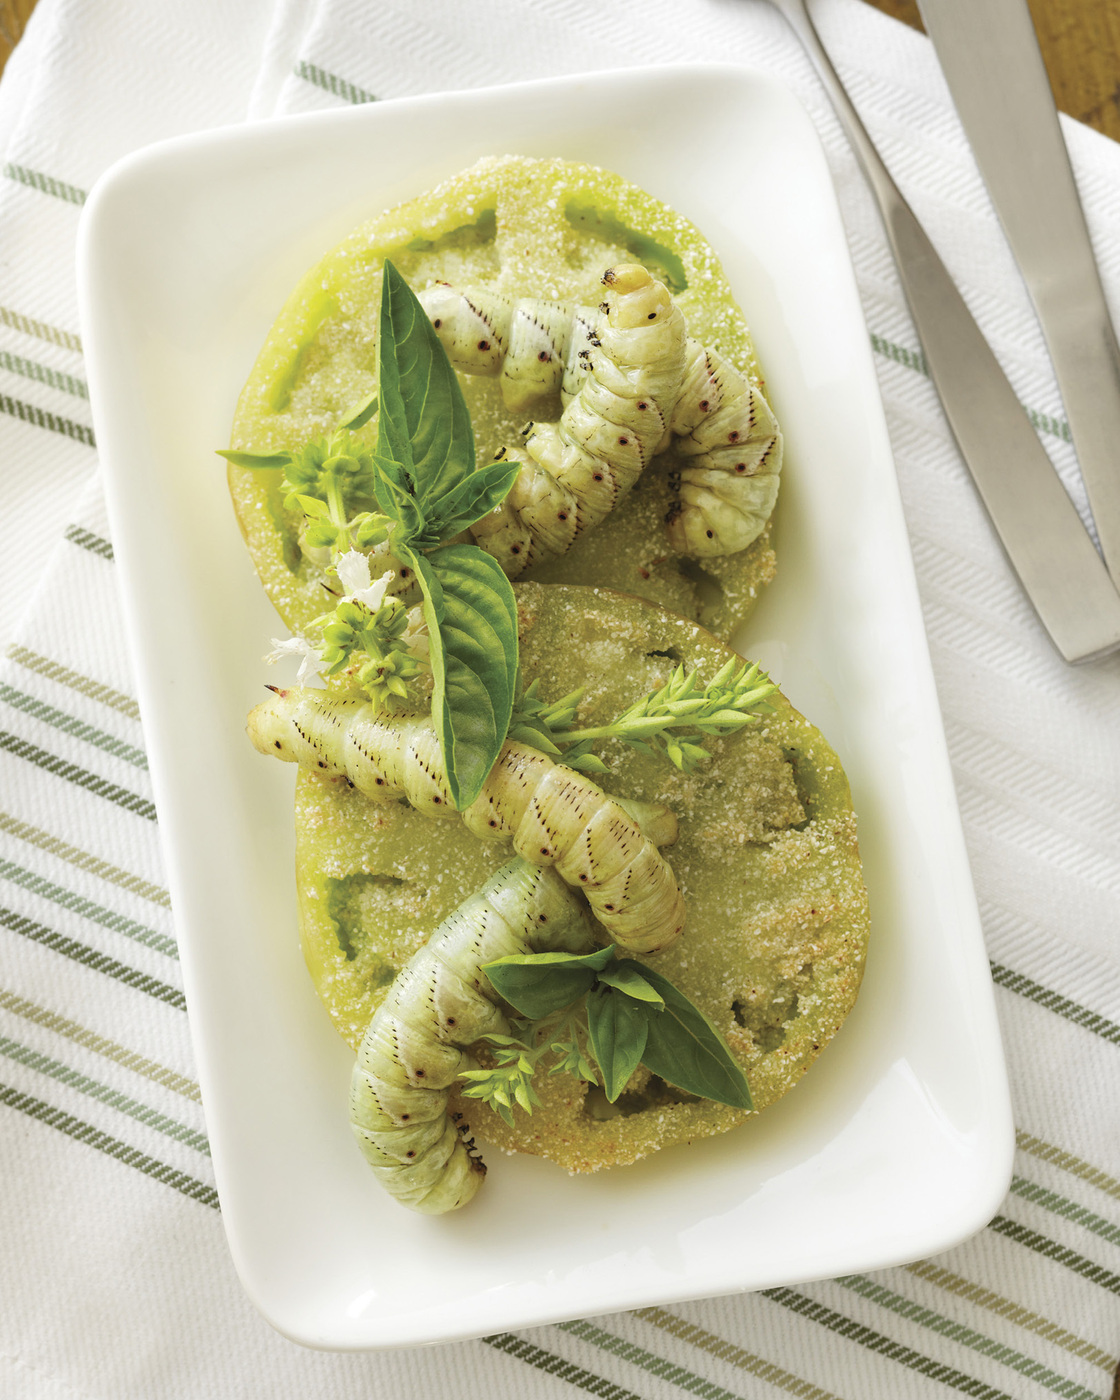 Fried green tomato hornworms. Chugrad McAndrews/ Photo: Reprinted with permission from The Eat-A-Bug Cookbook